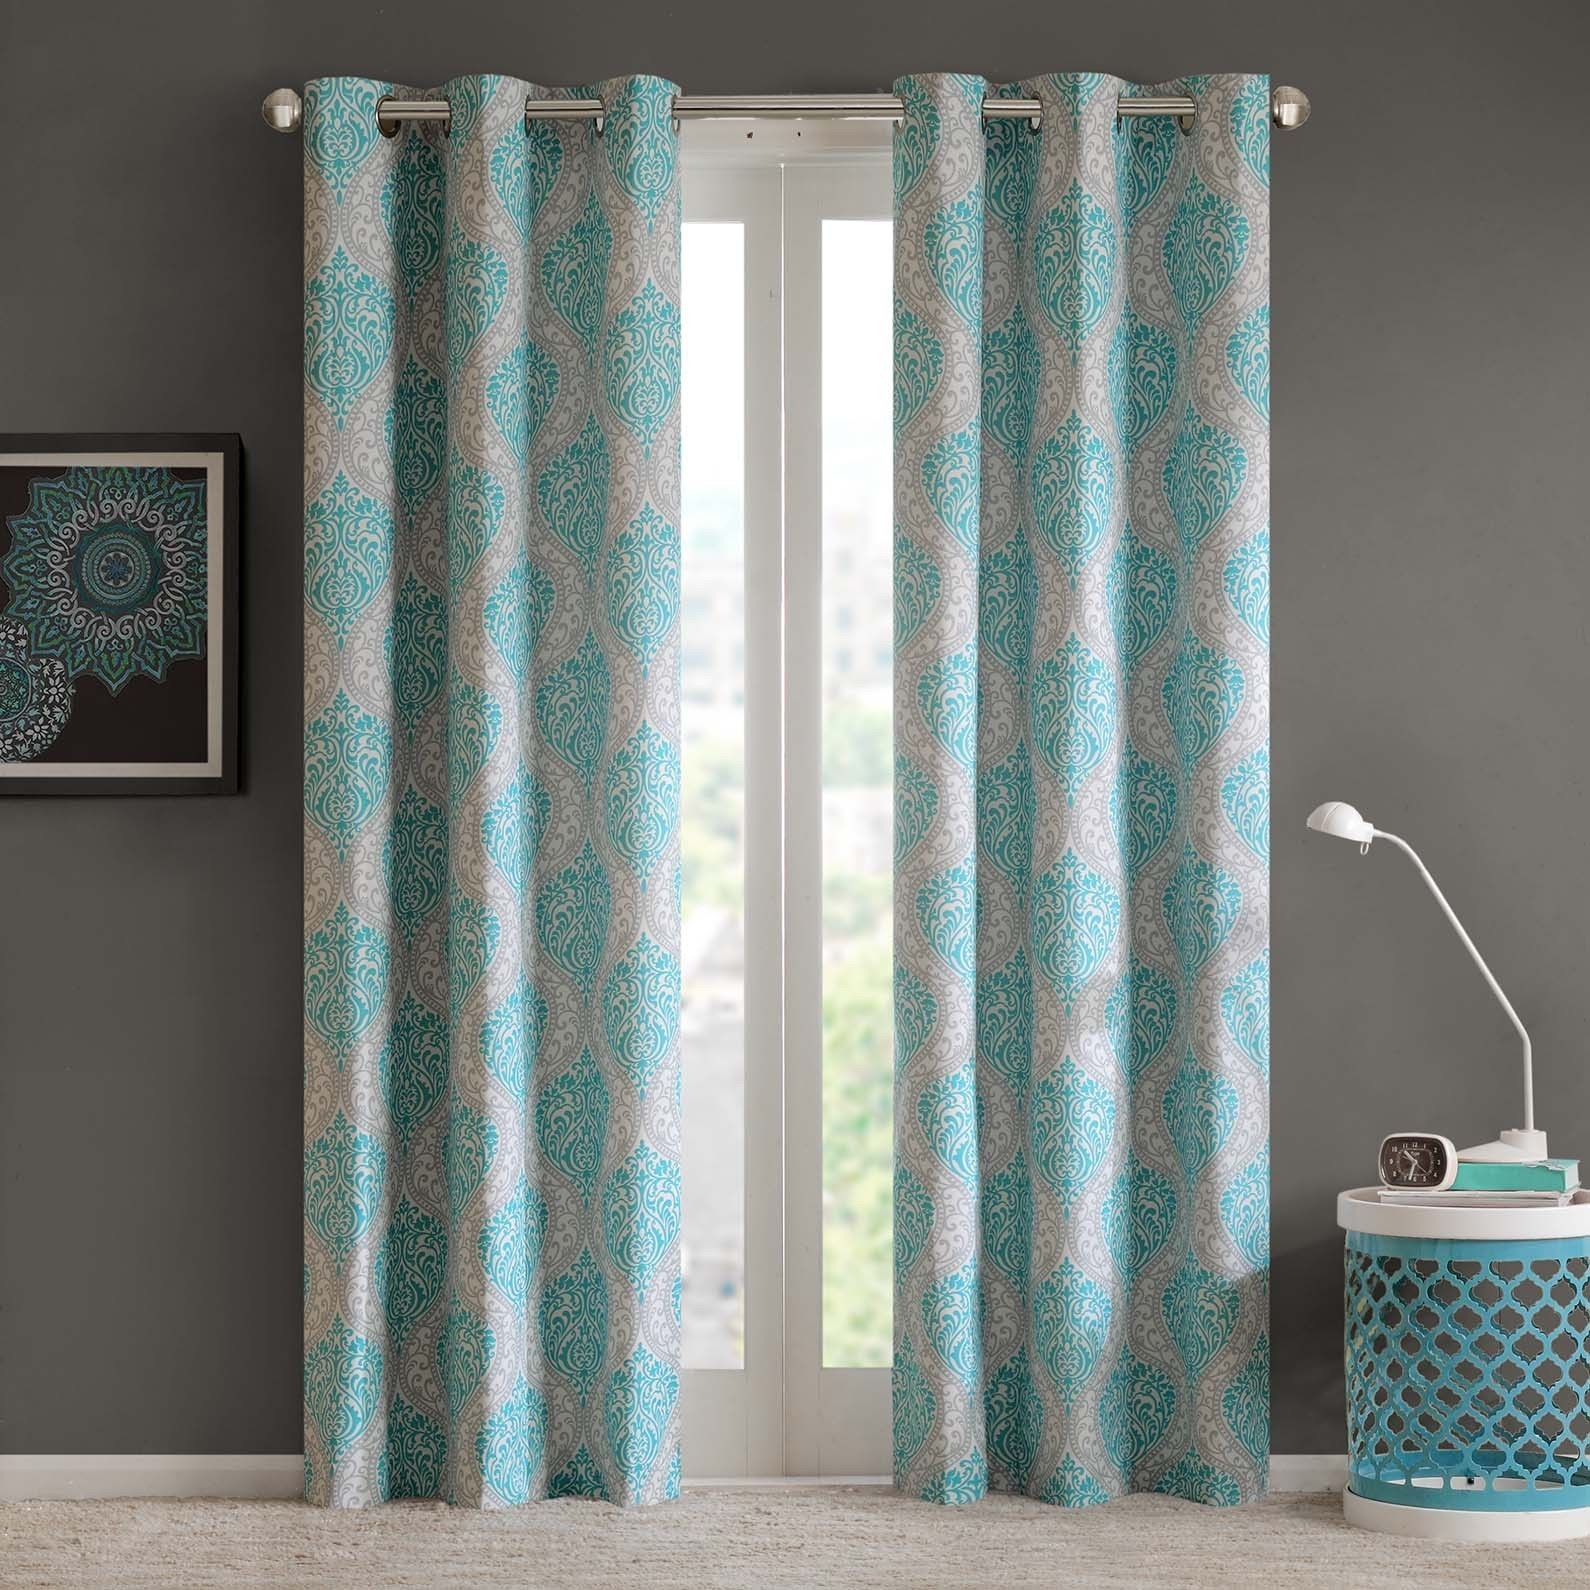 Intelligent Design Sydney Damask Printed Grommet Top Window Curtain Panel Pair Pertaining To Pastel Damask Printed Room Darkening Grommet Window Curtain Panel Pairs (View 19 of 20)